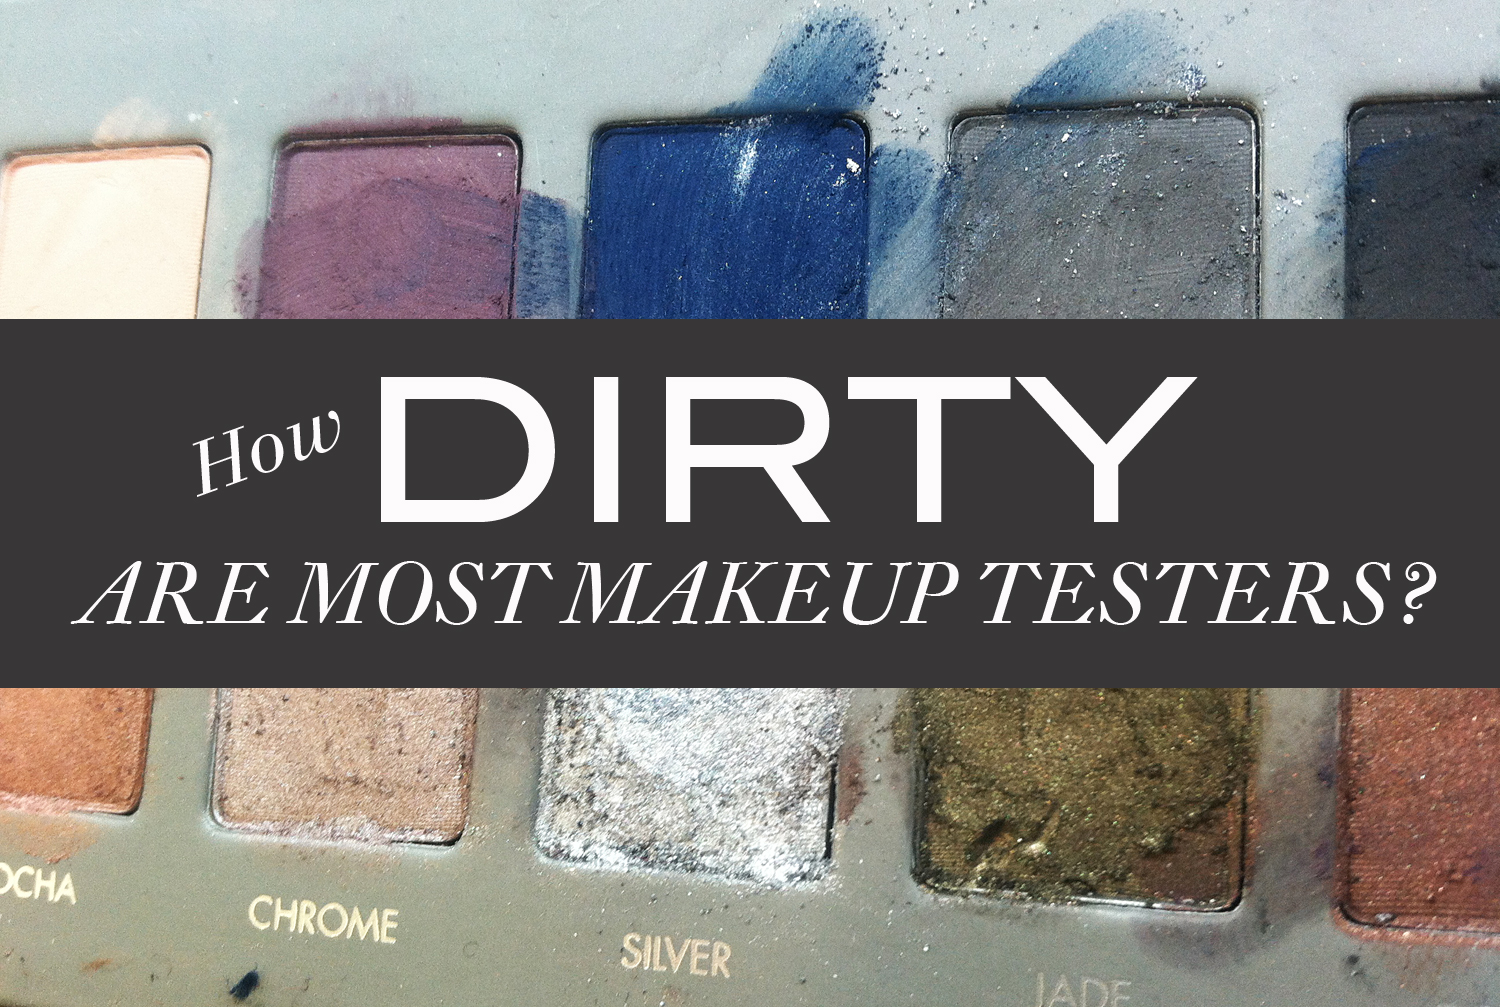 Confessions From the Makeup Counter - how dirty are most makeup testers? | From the Bathtub